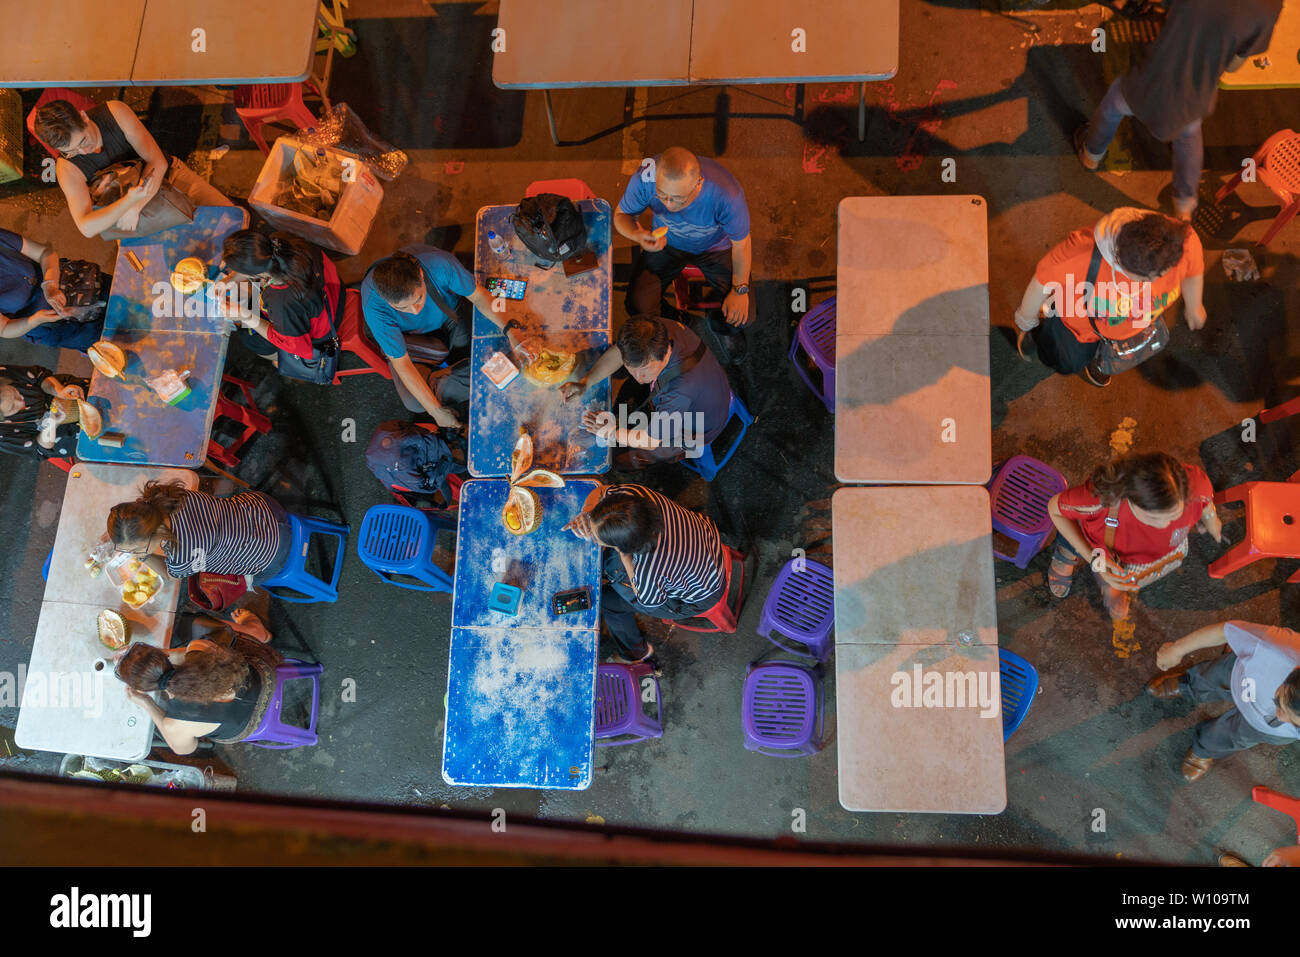 KOTA KINABULU, BORNEO - JUNE 1 2019; Night street market for locals eating delicacy but smelly durian fruit at tables in street - Stock Image